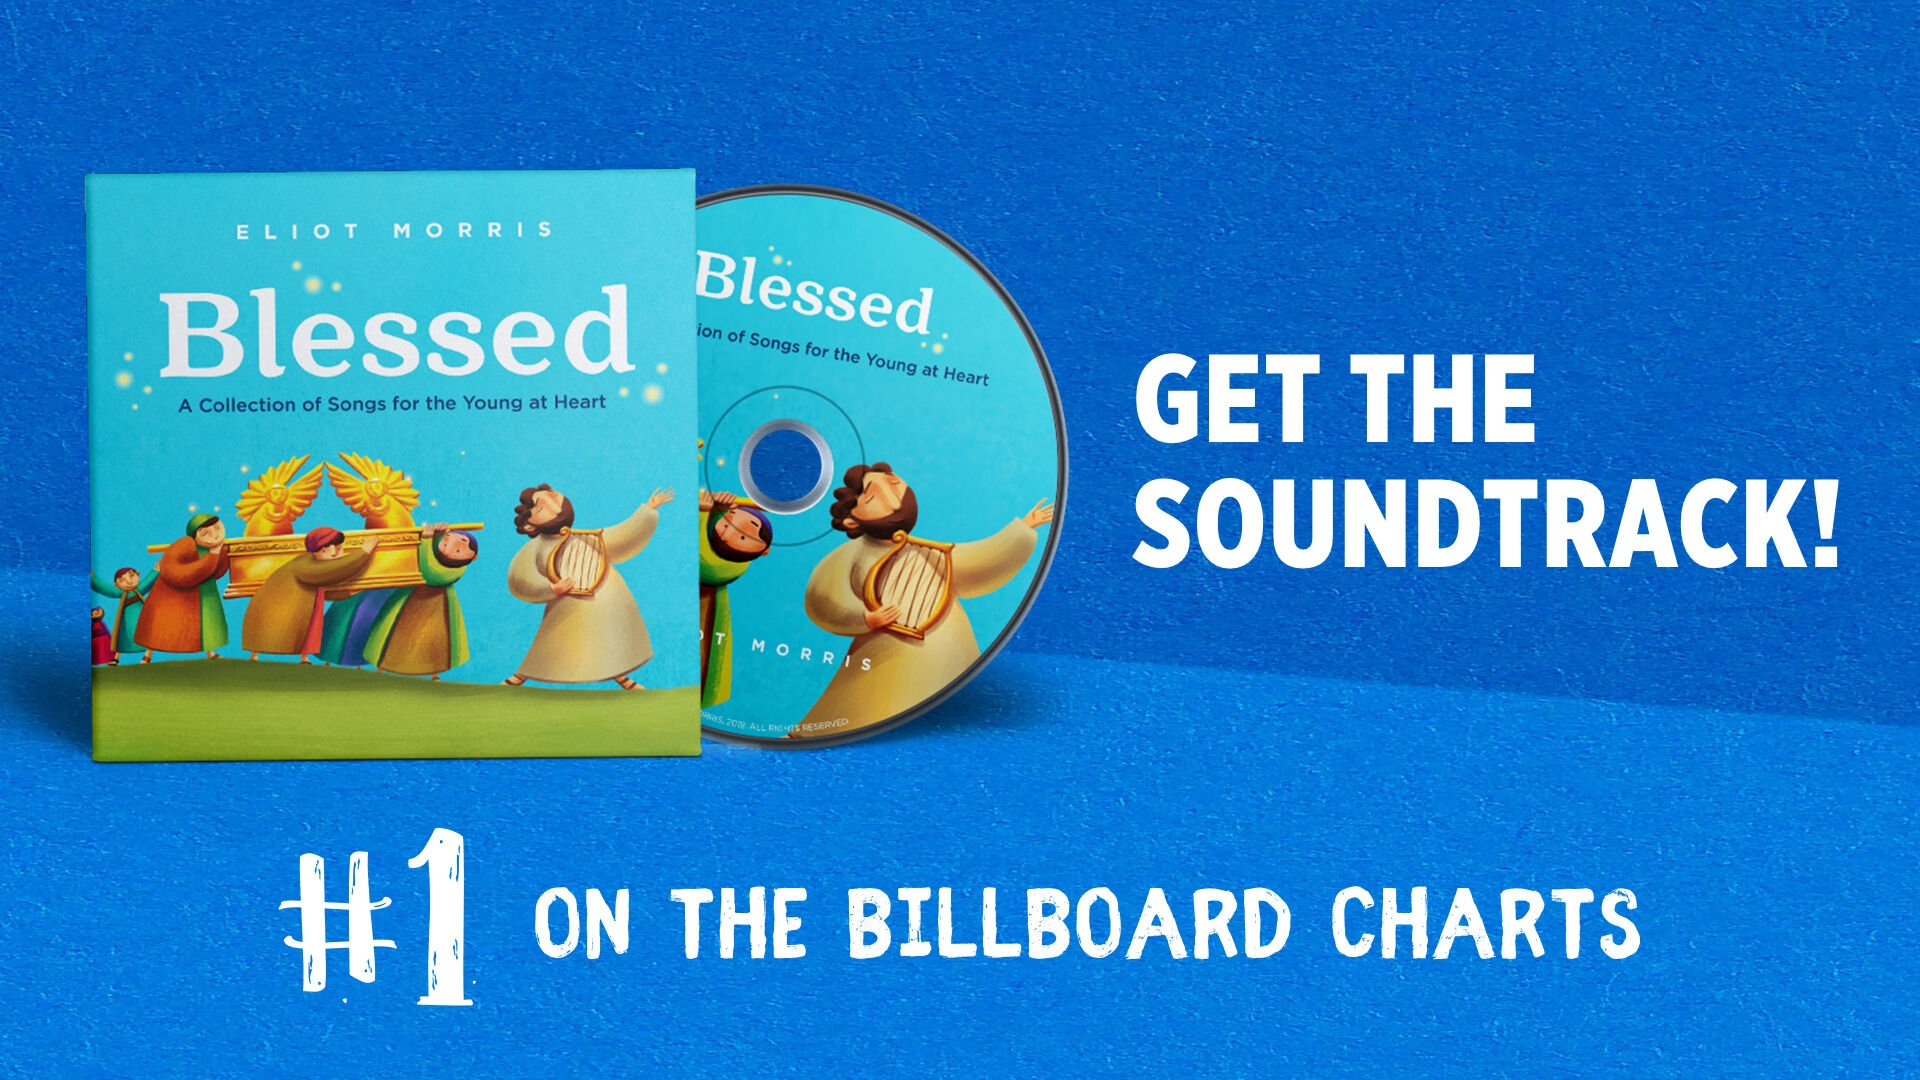 Get the BLESSED Soundtrack